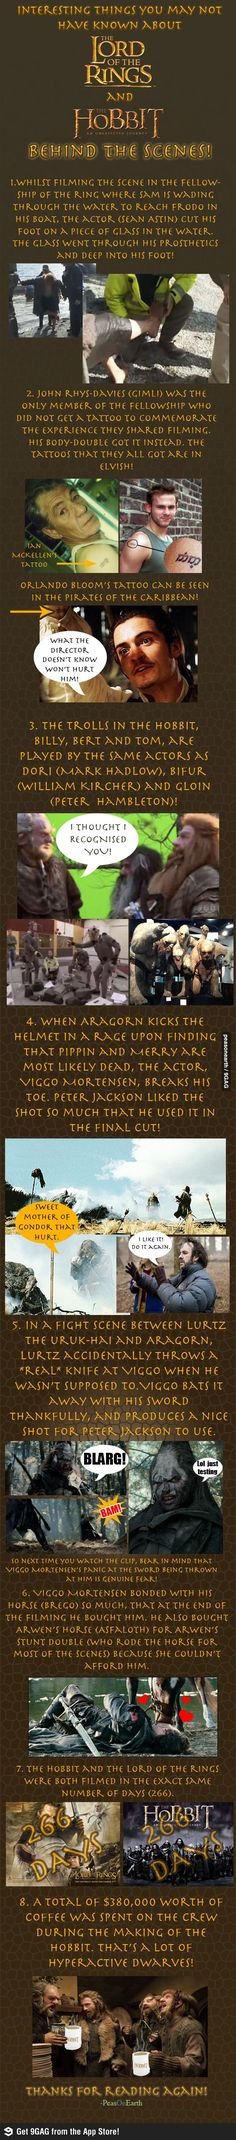 LOTR and Hobbit facts